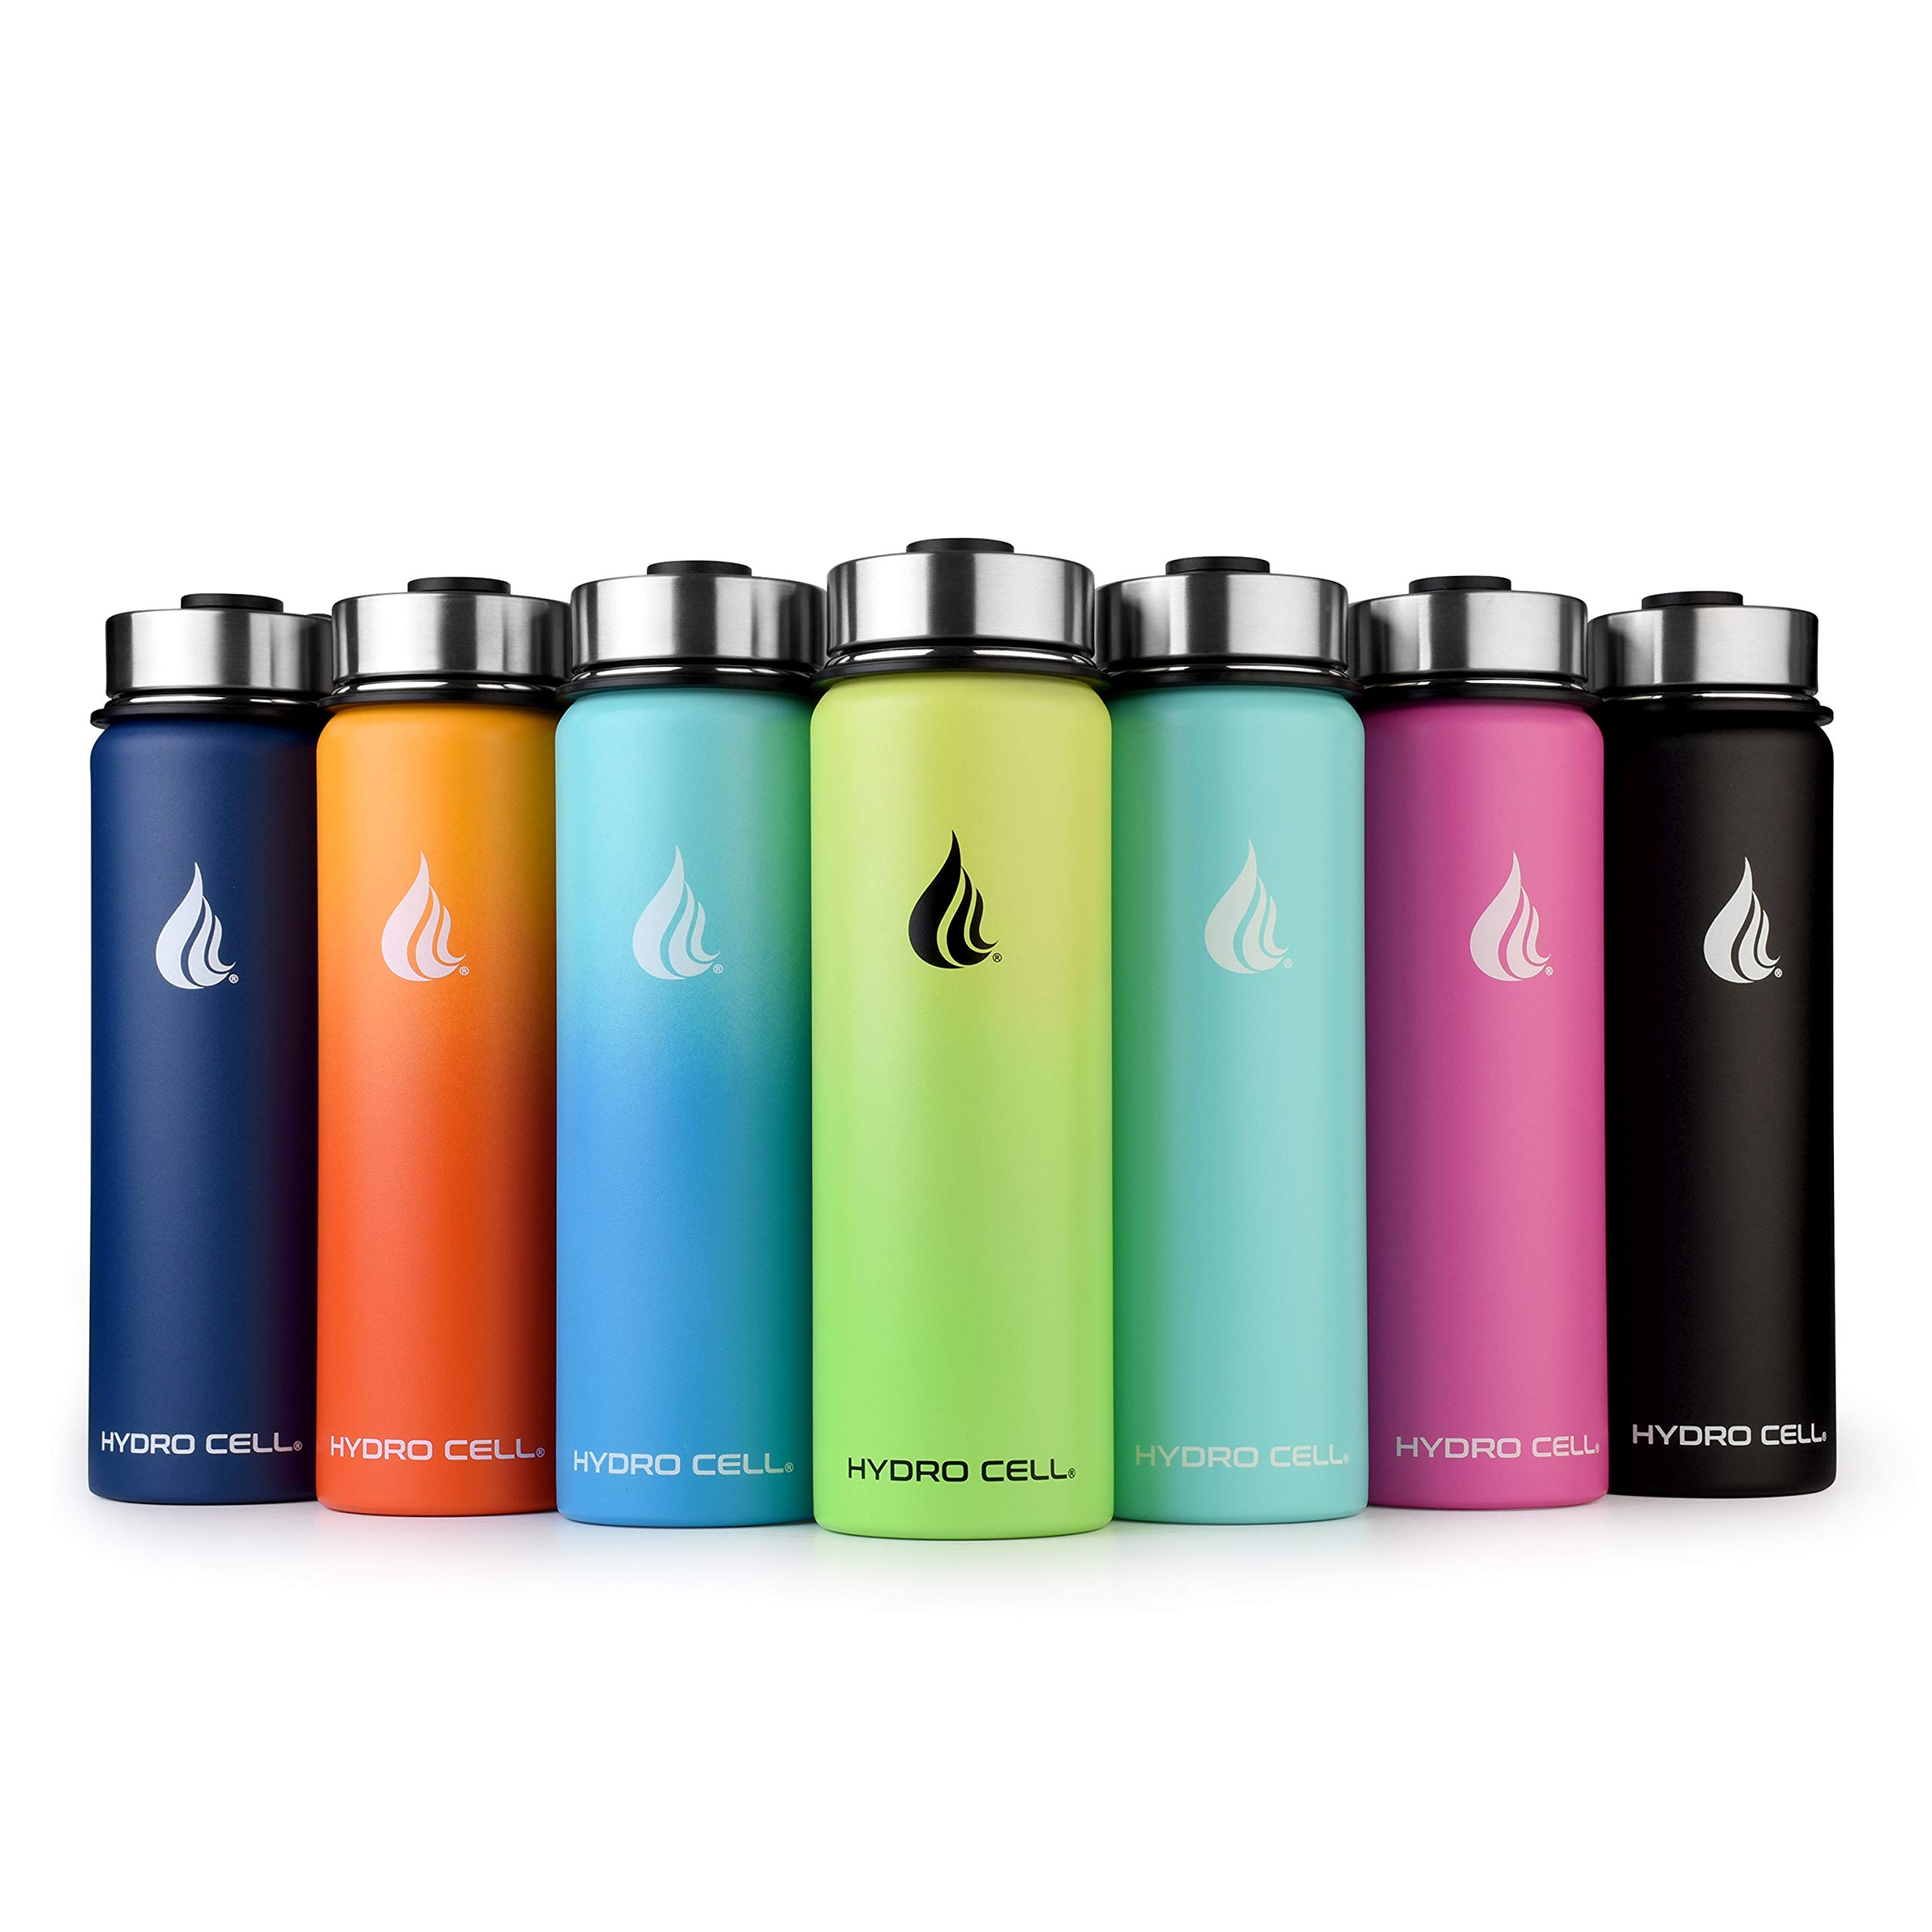 HYDRO CELL Stainless Steel Water Bottle with Straw & Wide Mouth Lids (24oz) - Keeps Liquids Perfectly Hot or Cold with Double Wall Vacuum Insulated Sweat Proof Sport Design (Teal/Blue 24oz) by HYDRO CELL